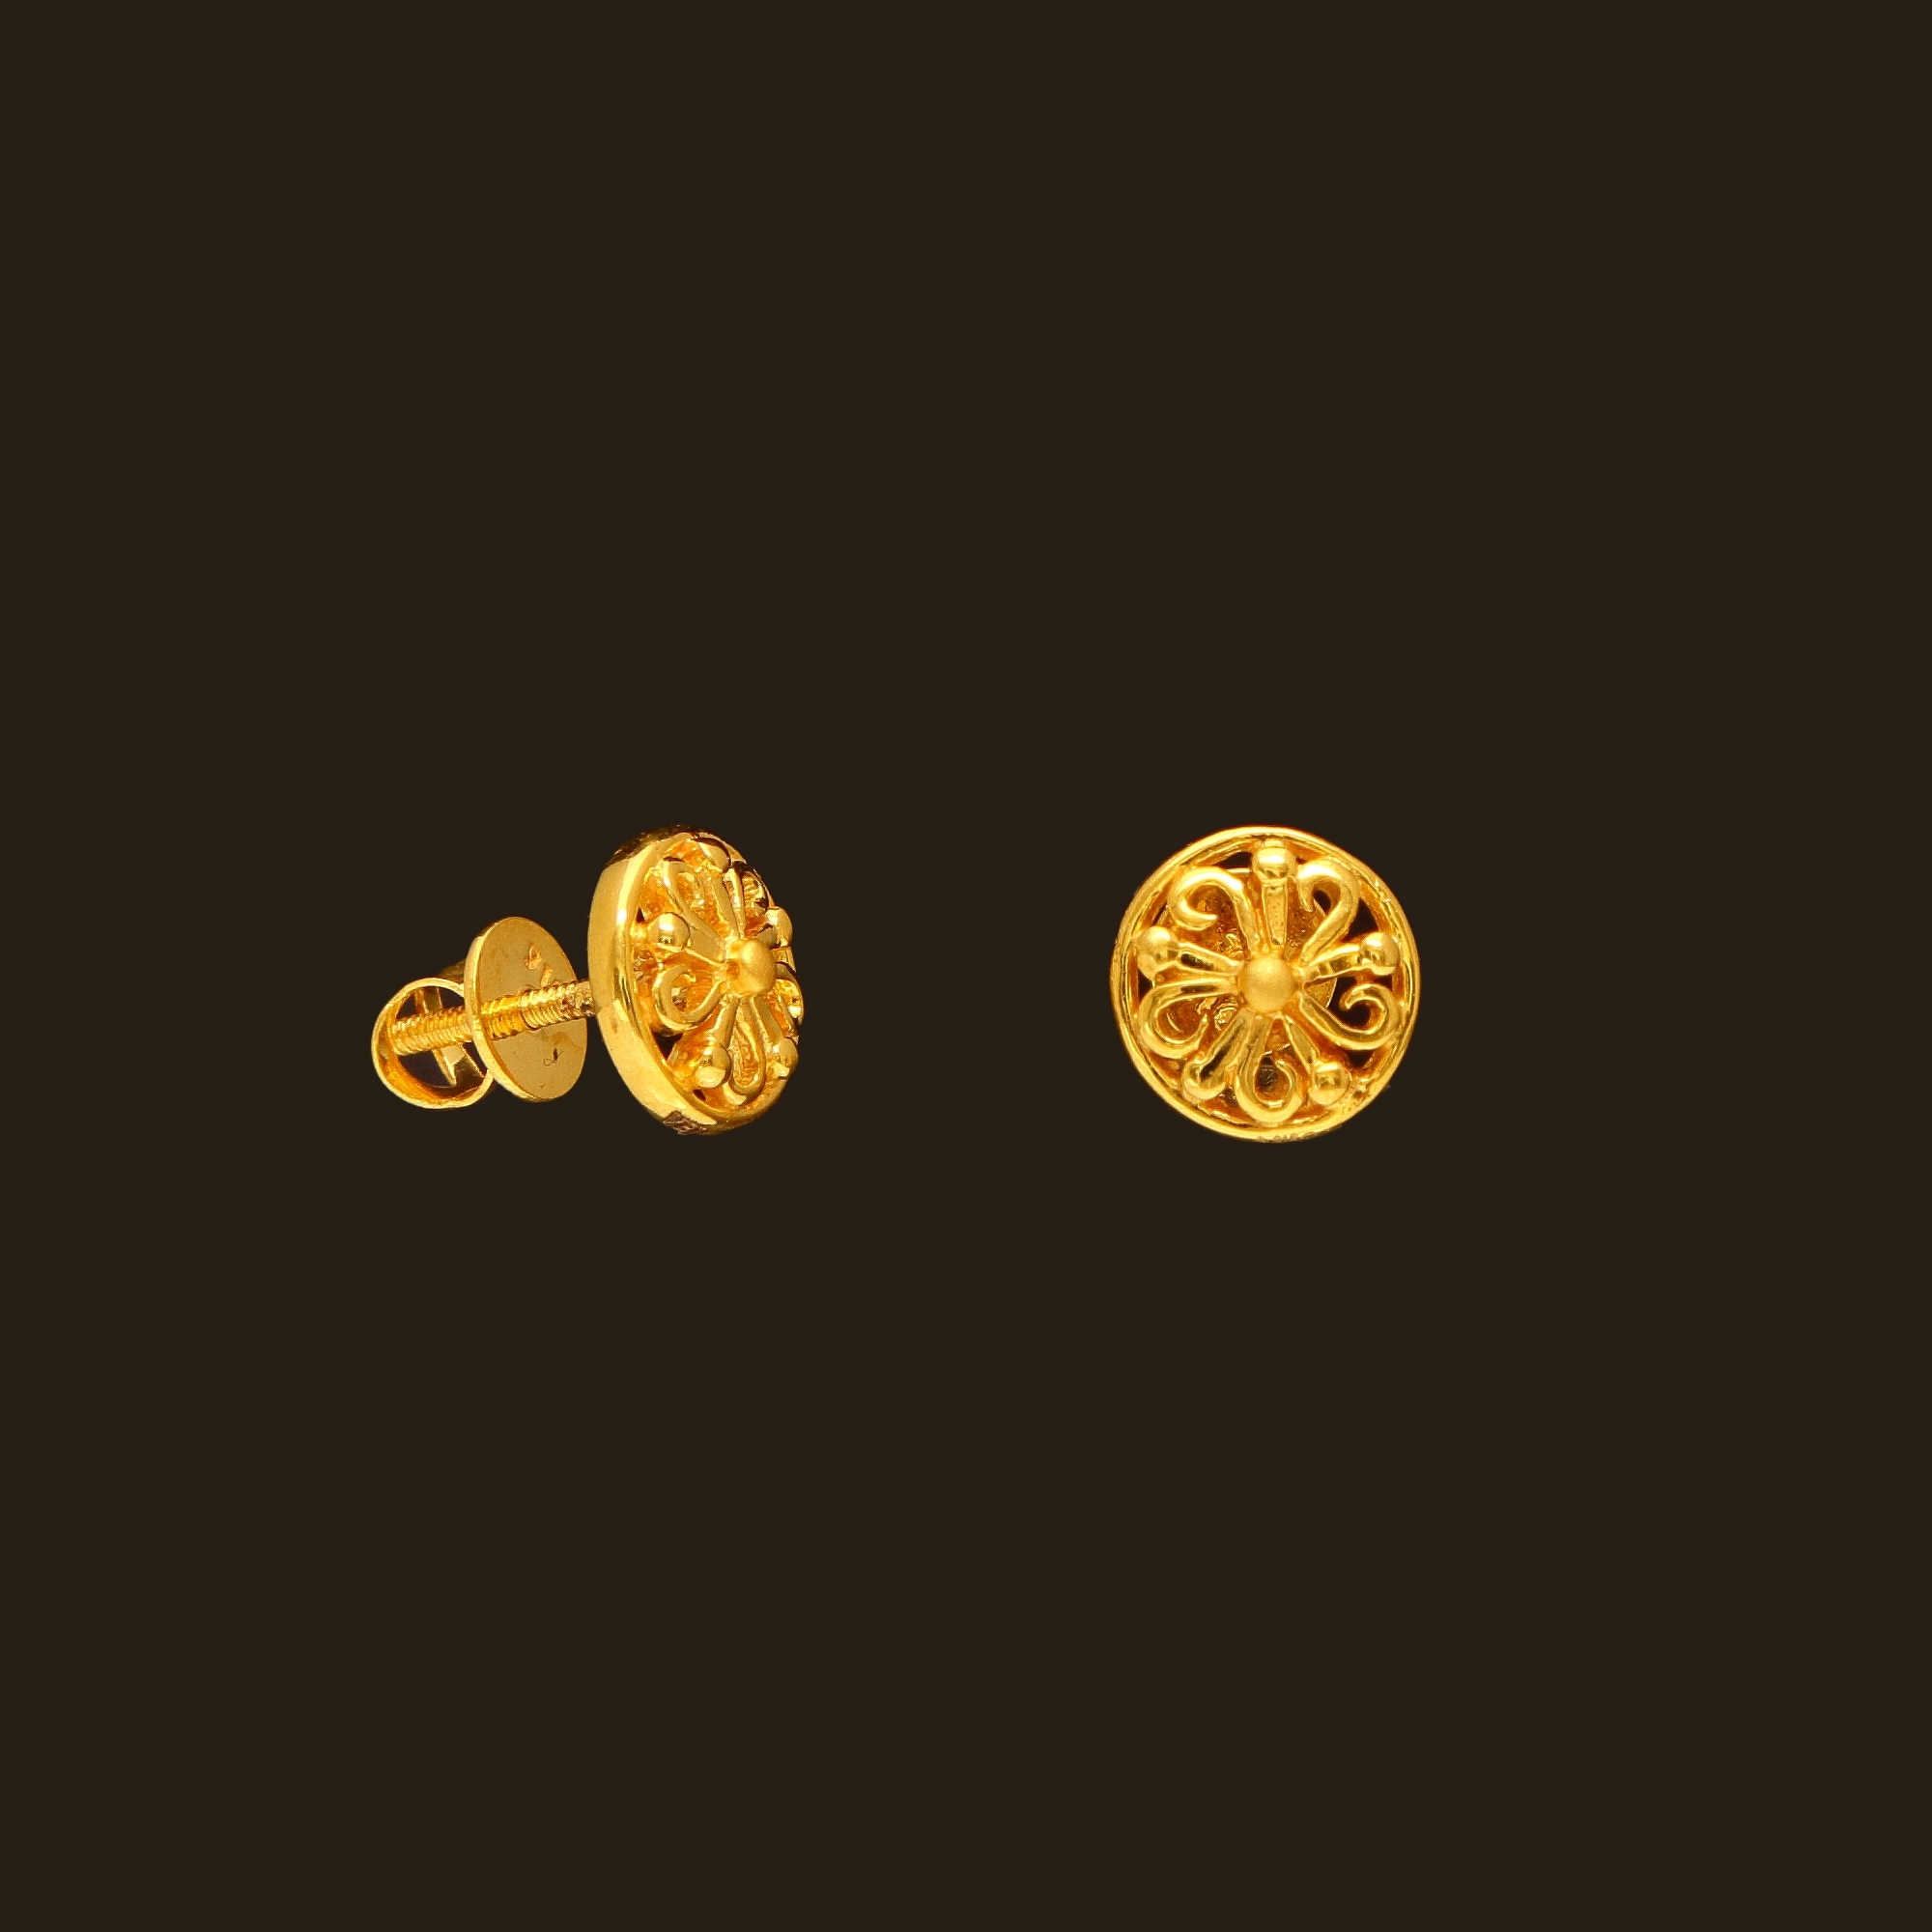 Small Gold Earrings Designs ~ South India Jewels